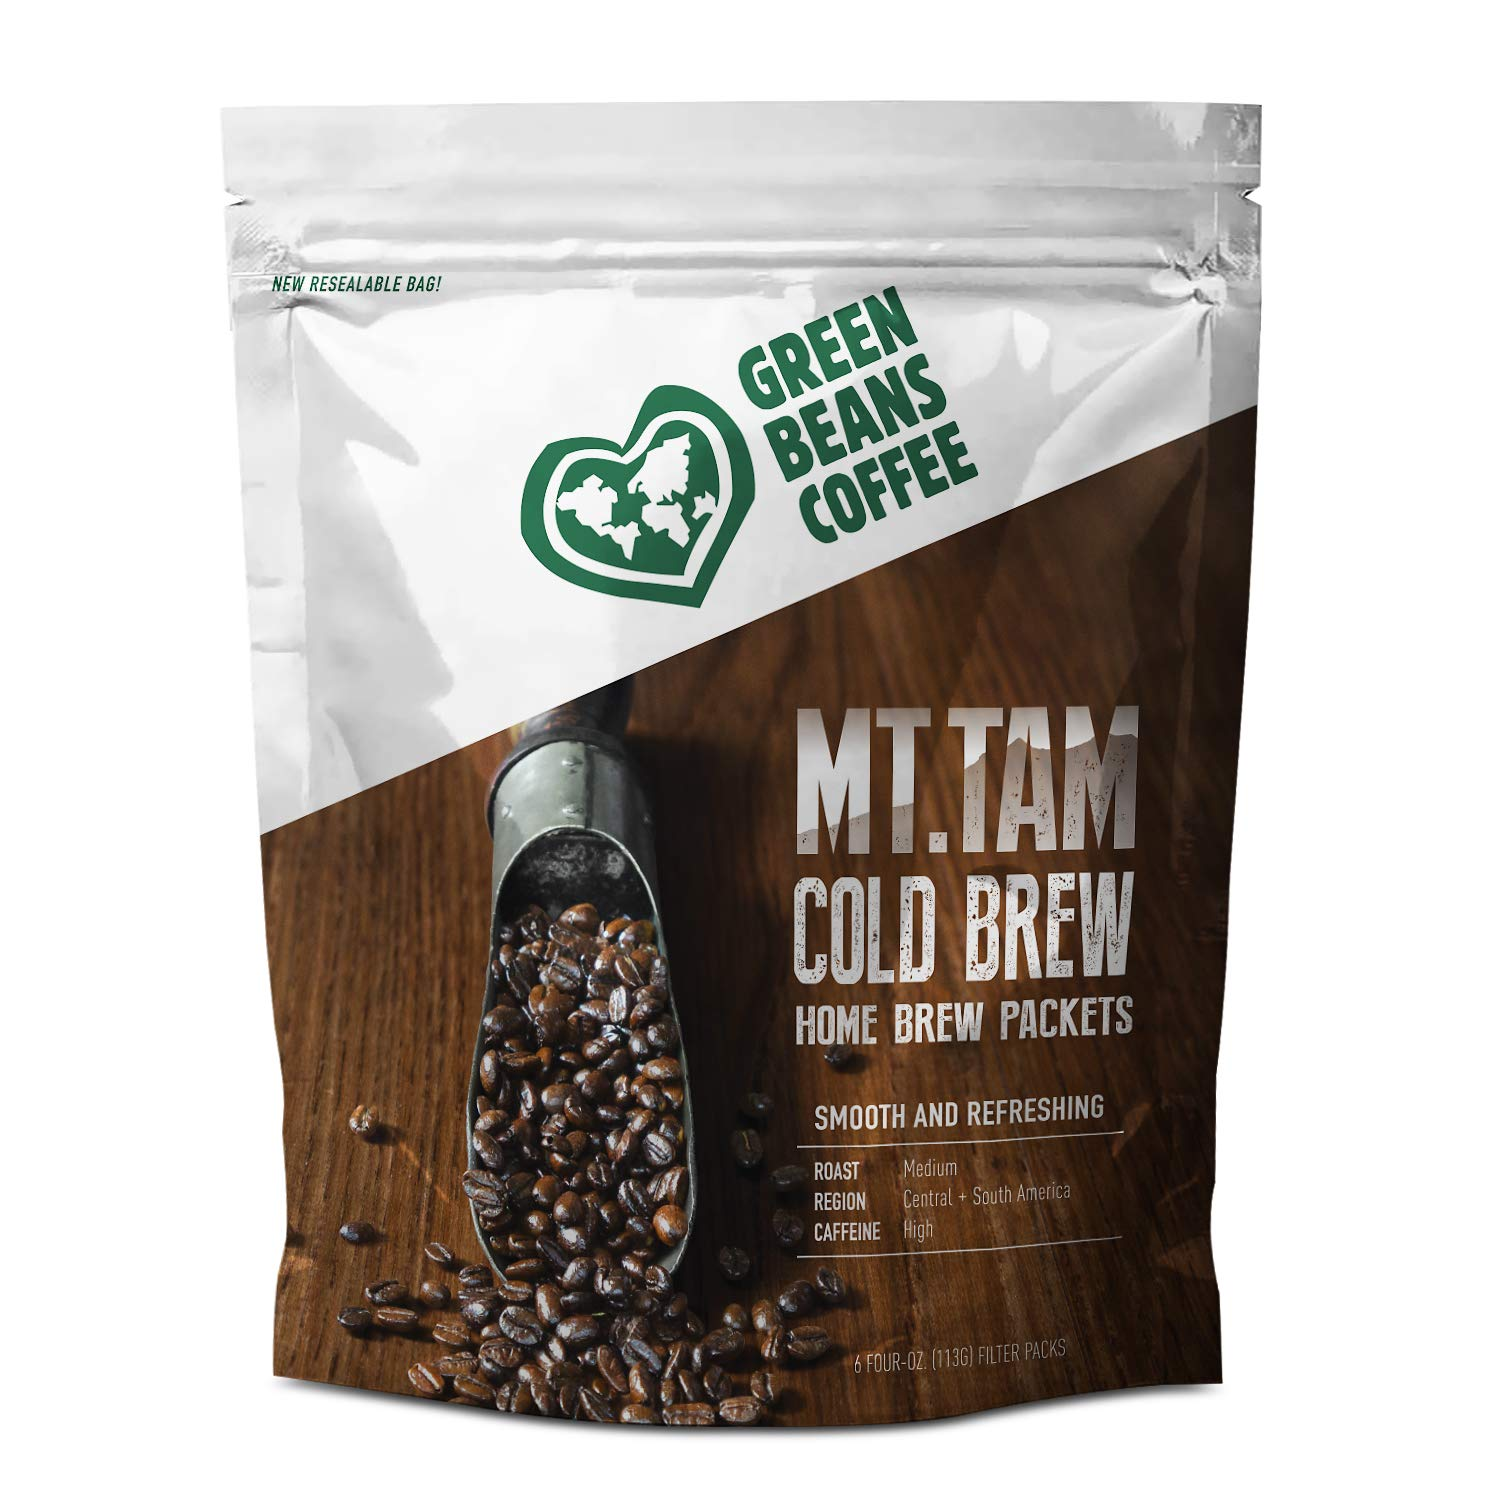 Green Beans Cold Brew Coffee Easy Home Brew Packets - 6 count 4oz Filter Packs